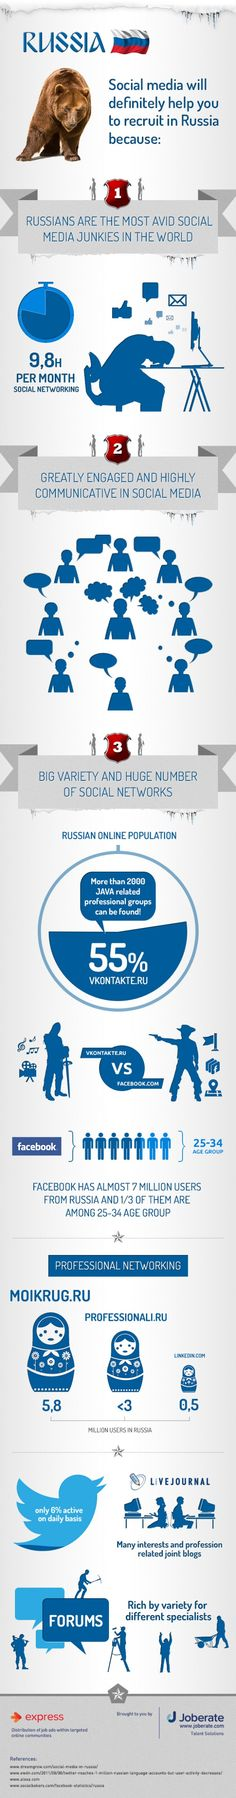 Social media and recruitment in Russia